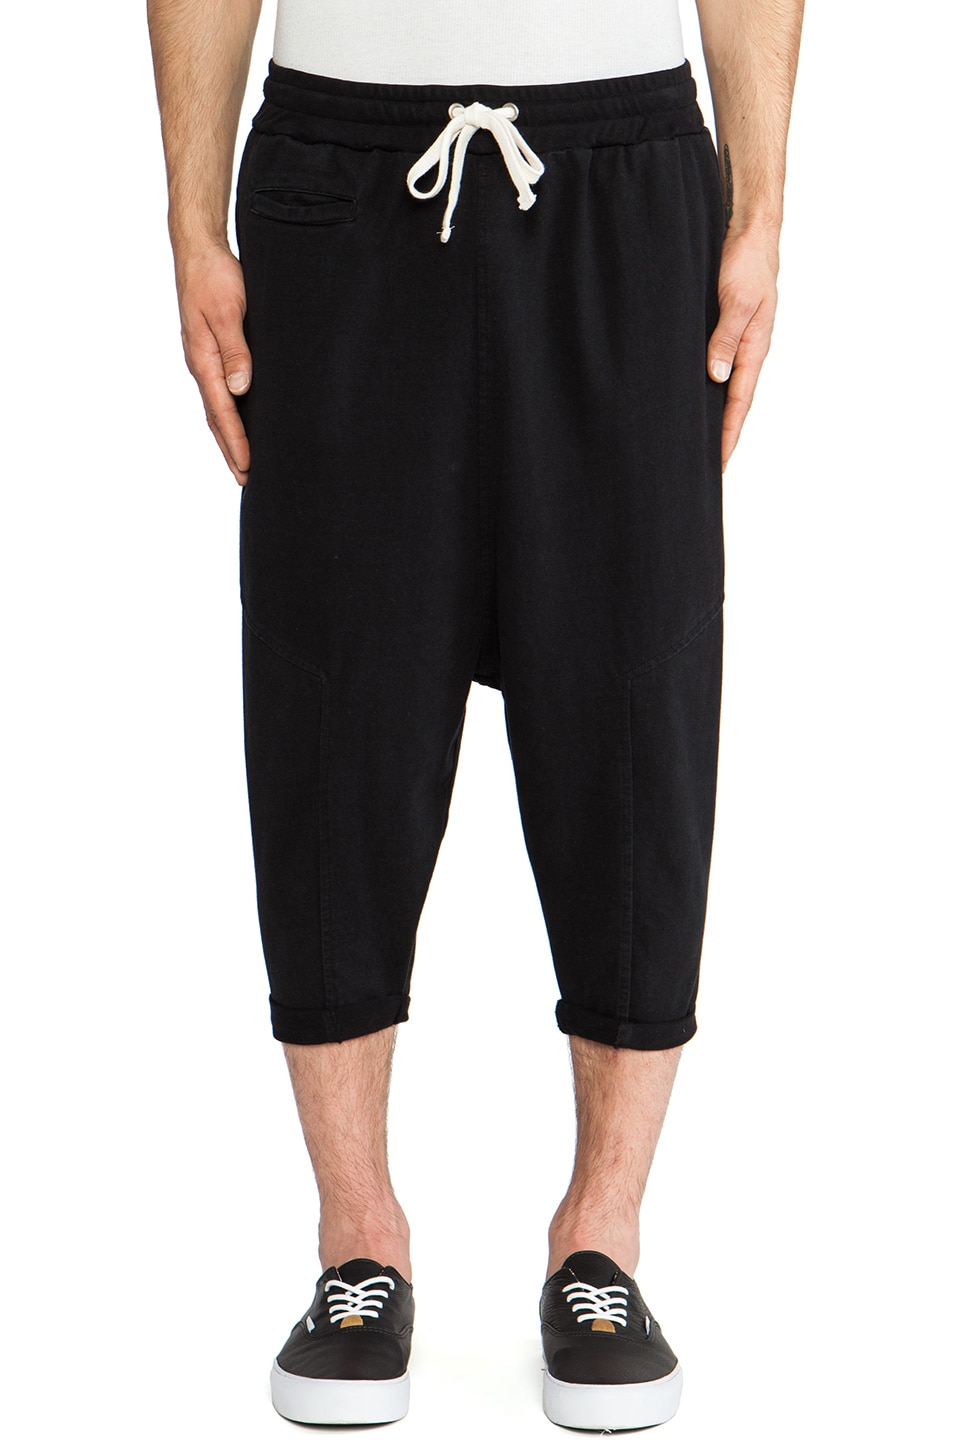 Drifter Miles Sweatshort in Black